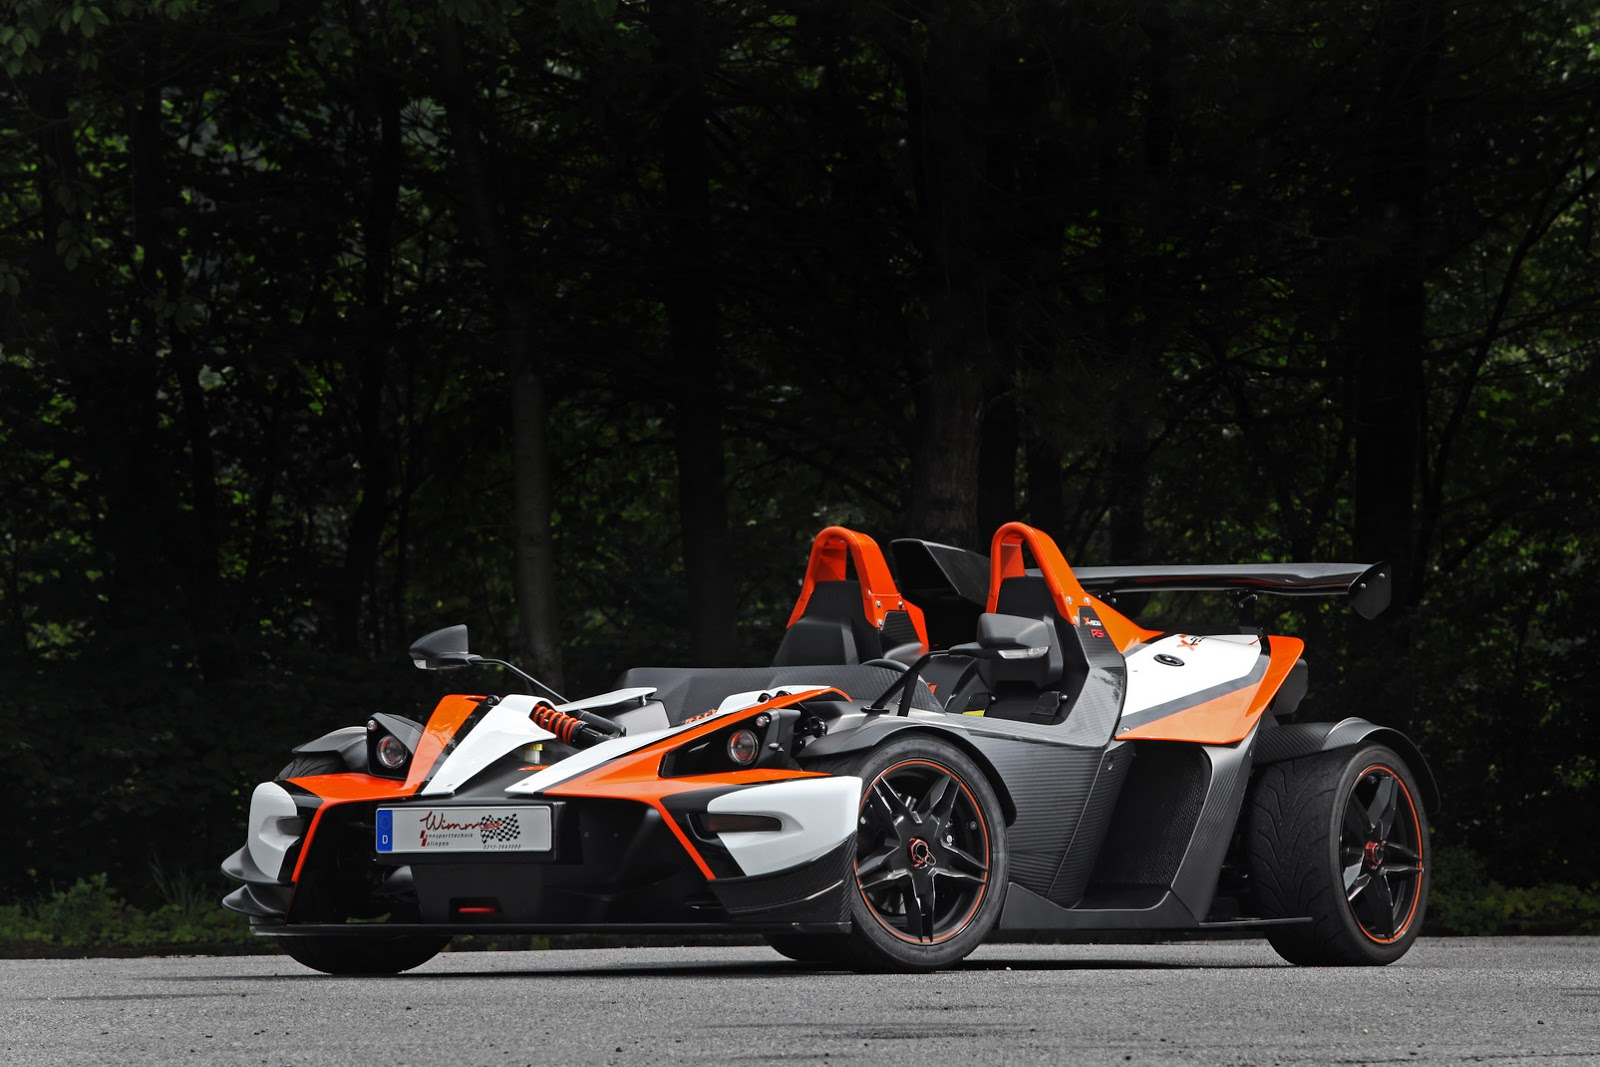 wimmer rs 39 trio of tuned ktm x bows with up to 485ps. Black Bedroom Furniture Sets. Home Design Ideas